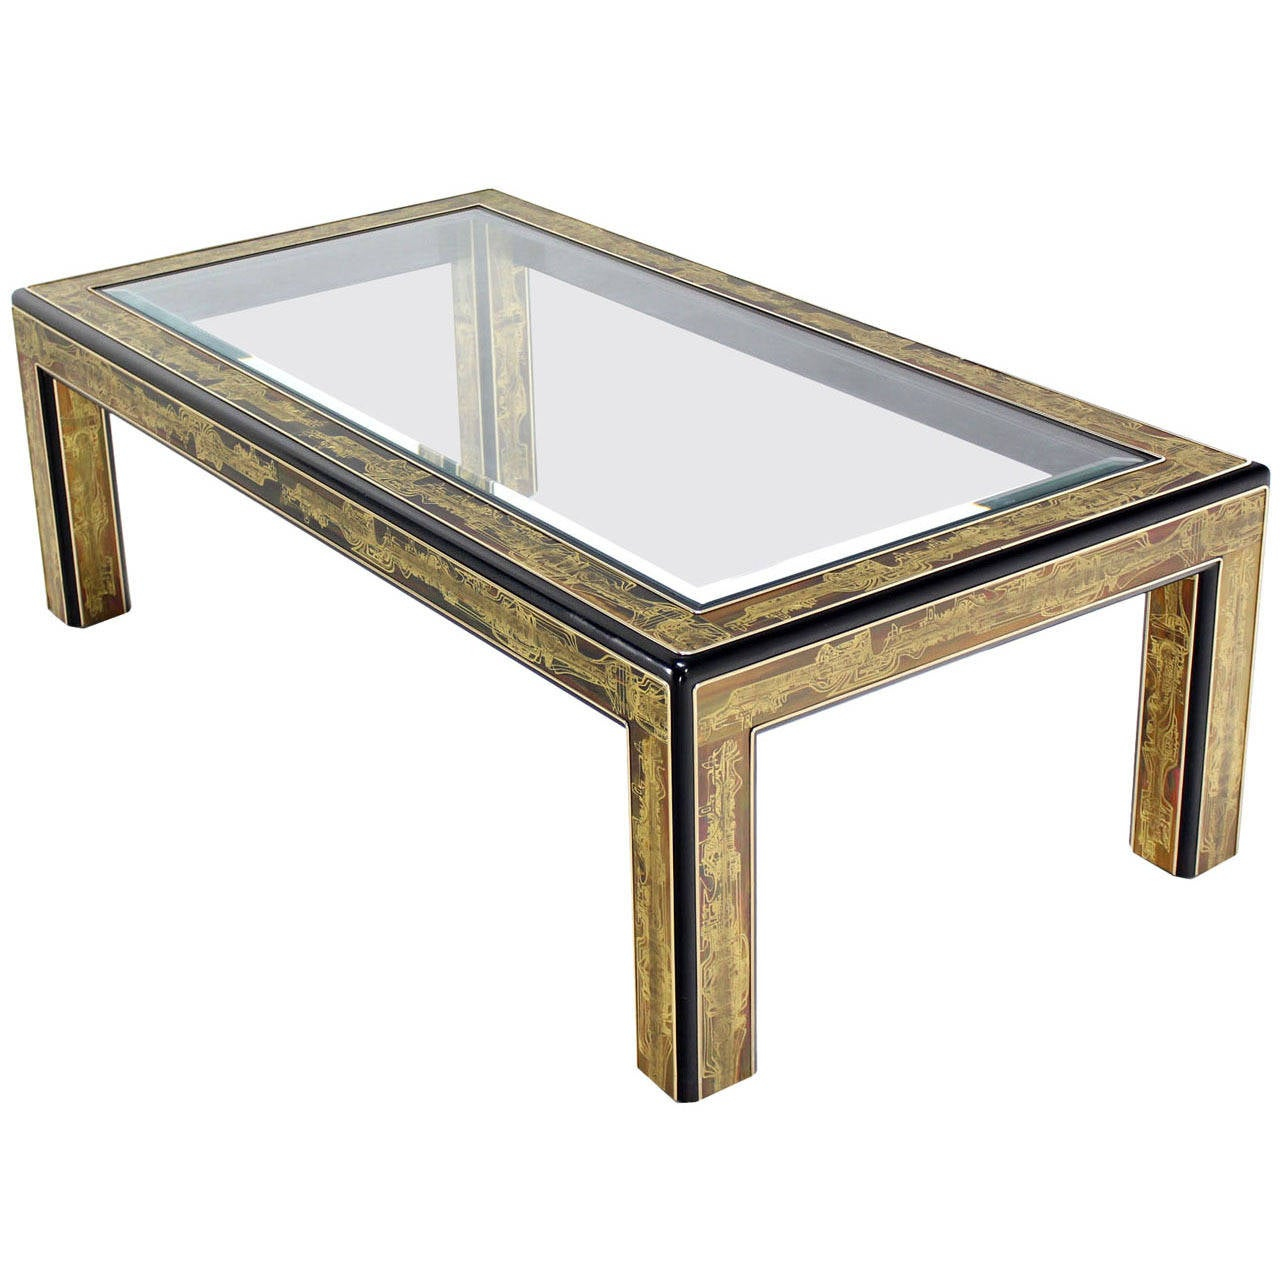 Rectangular glass top brass and wood base coffee table by mastercraft at 1stdibs Coffee tables glass top